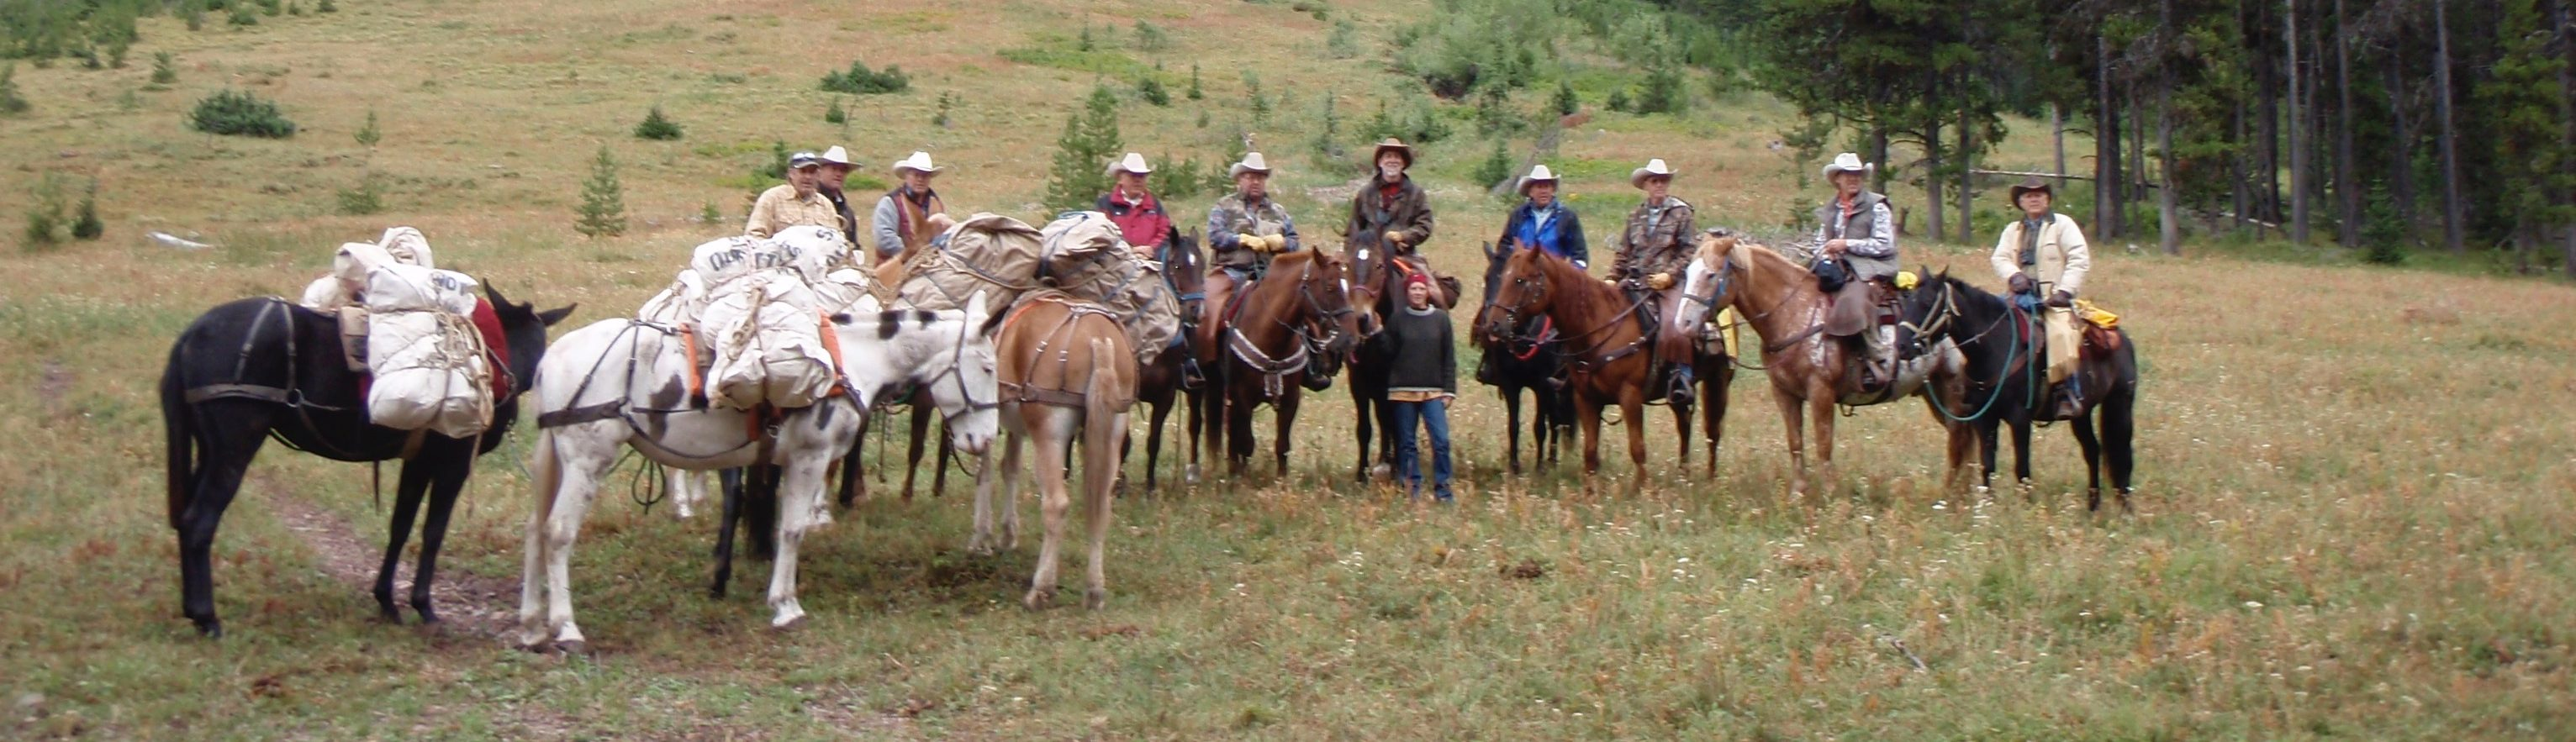 Montana wilderness horseback pack trips near Glacier National Park